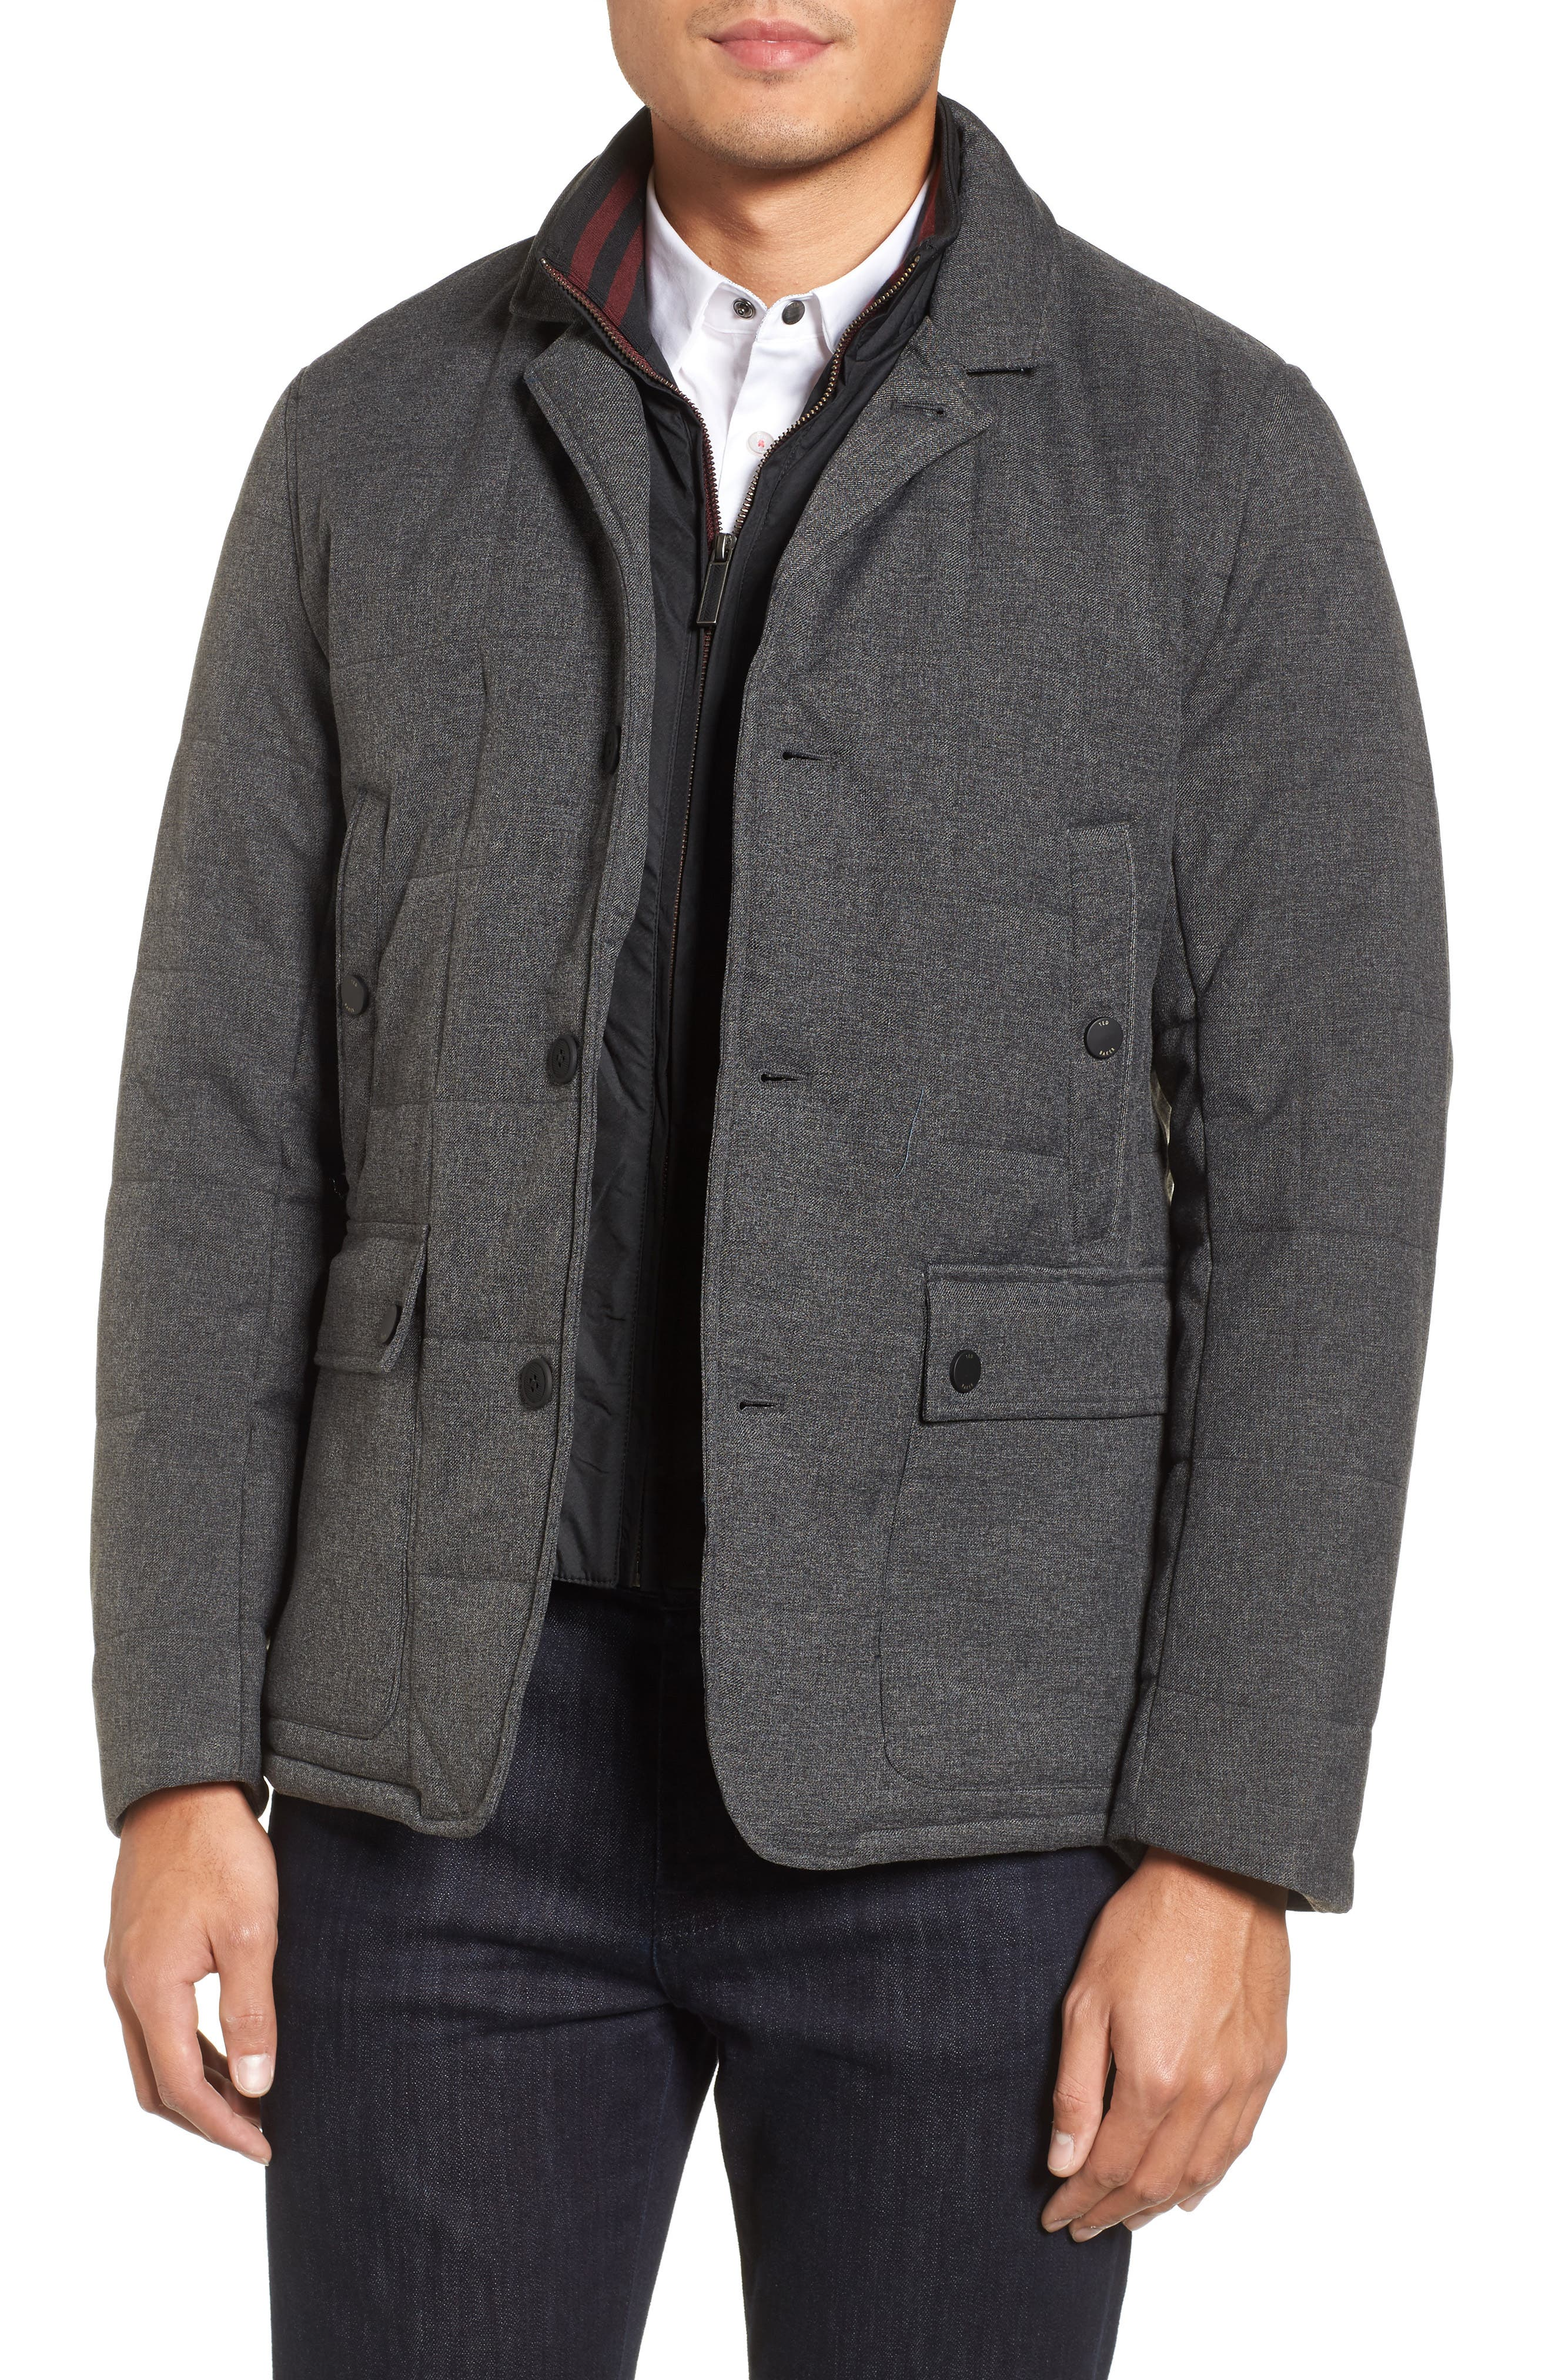 Alternate Image 1 Selected - Ted Baker London Jaycie Inset Bib Quilted Jacket